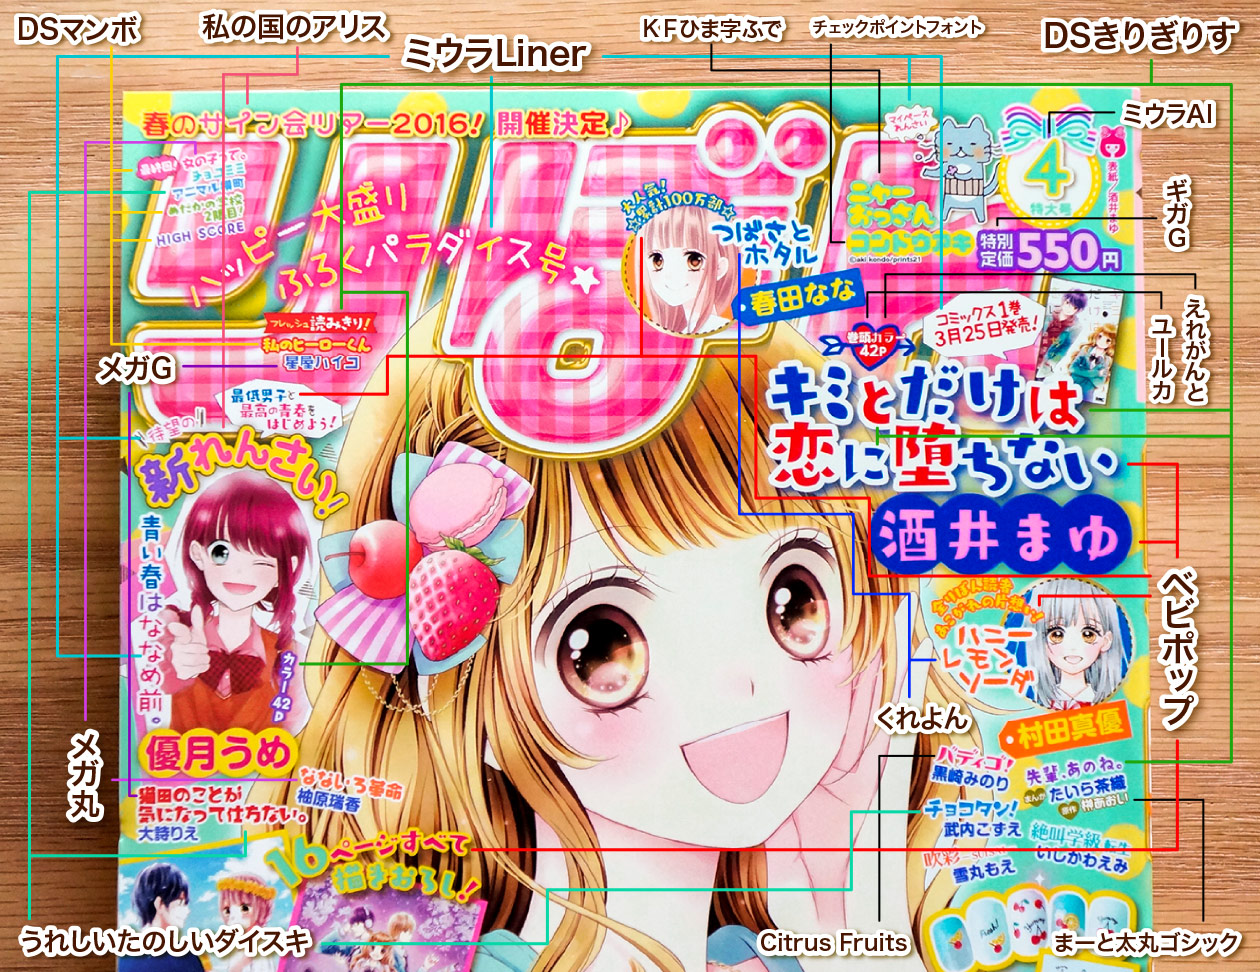 http://mini-design.jp/blog/wp-content/uploads/2016/04/160427_2girls-comic-magazine-design-font-love_03.jpg